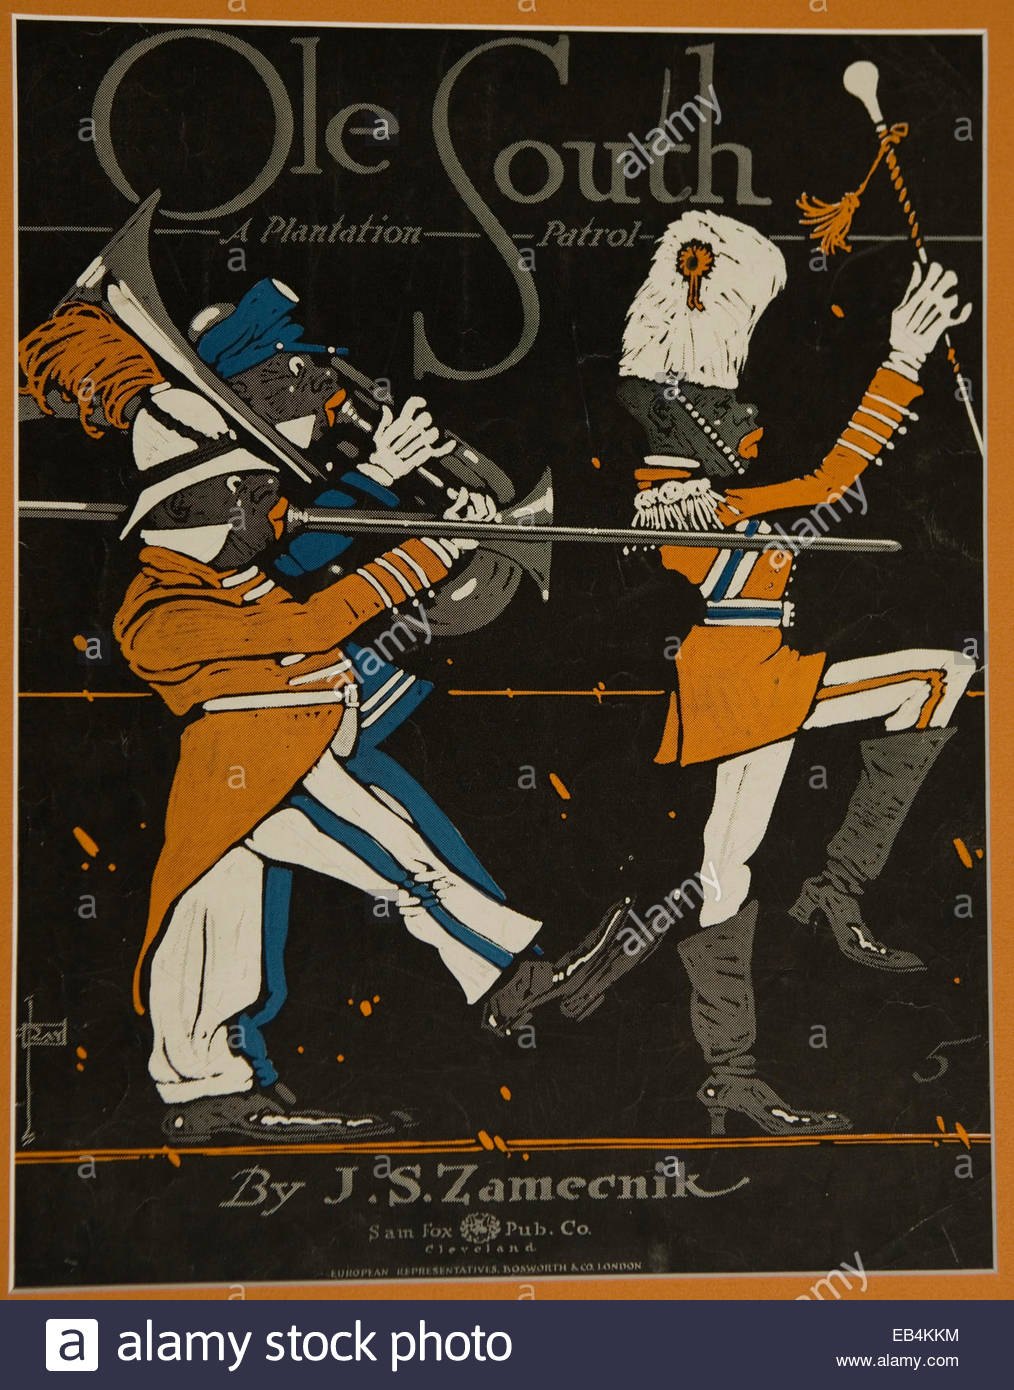 Sheet music from the early 20th century. - Stock Image